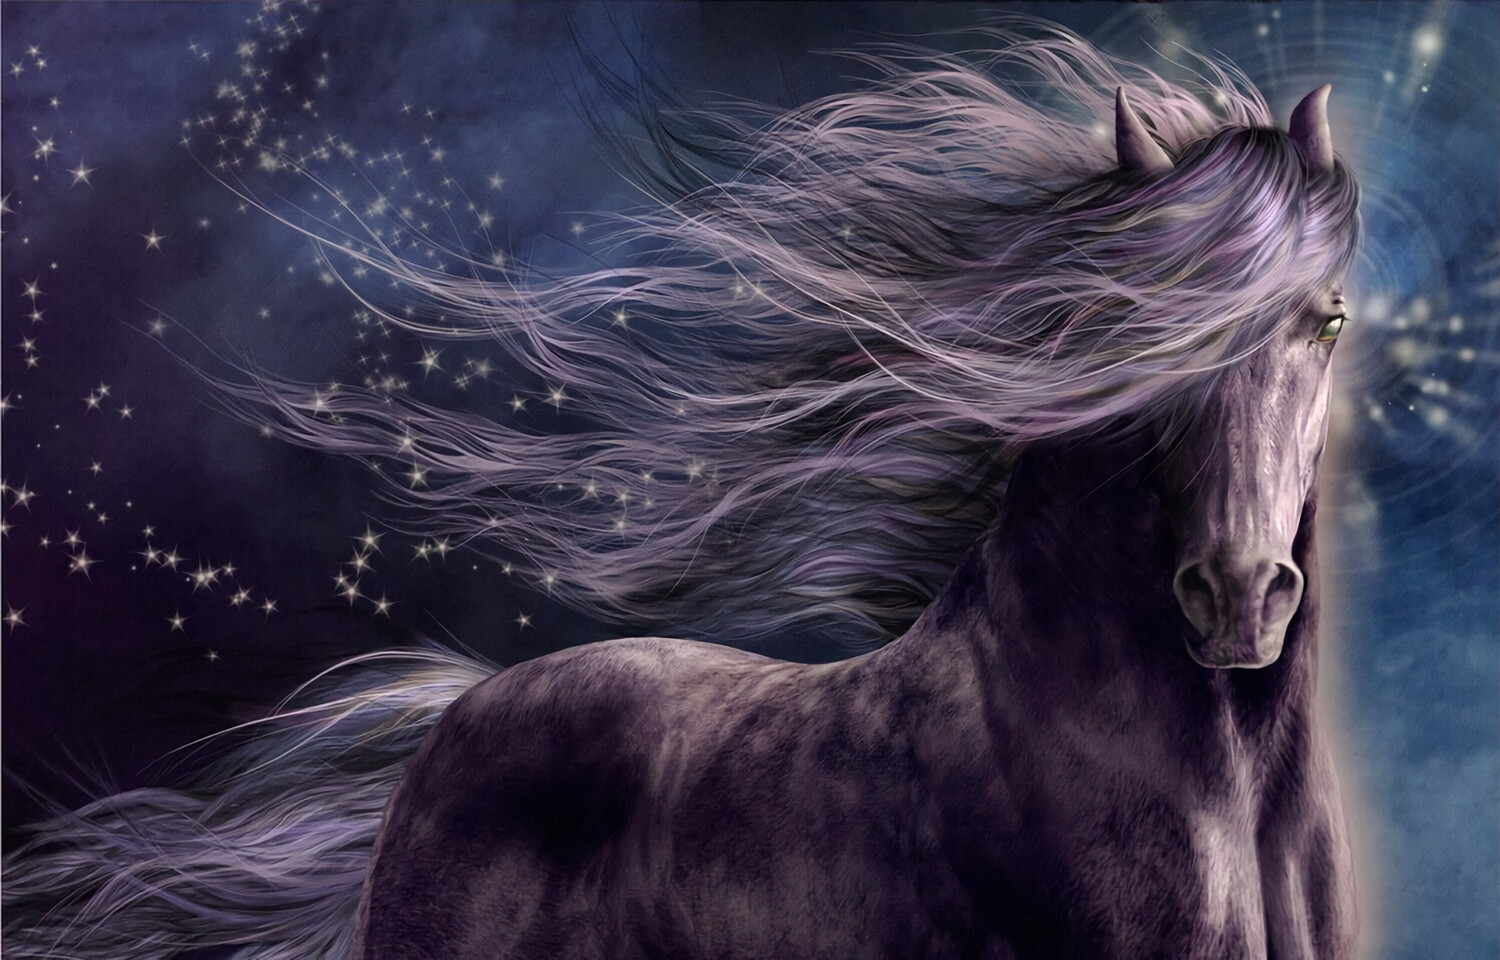 Horse 2 - Full Drill Diamond Painting - Specially ordered for you. Delivery is approximately 4 - 6 weeks.